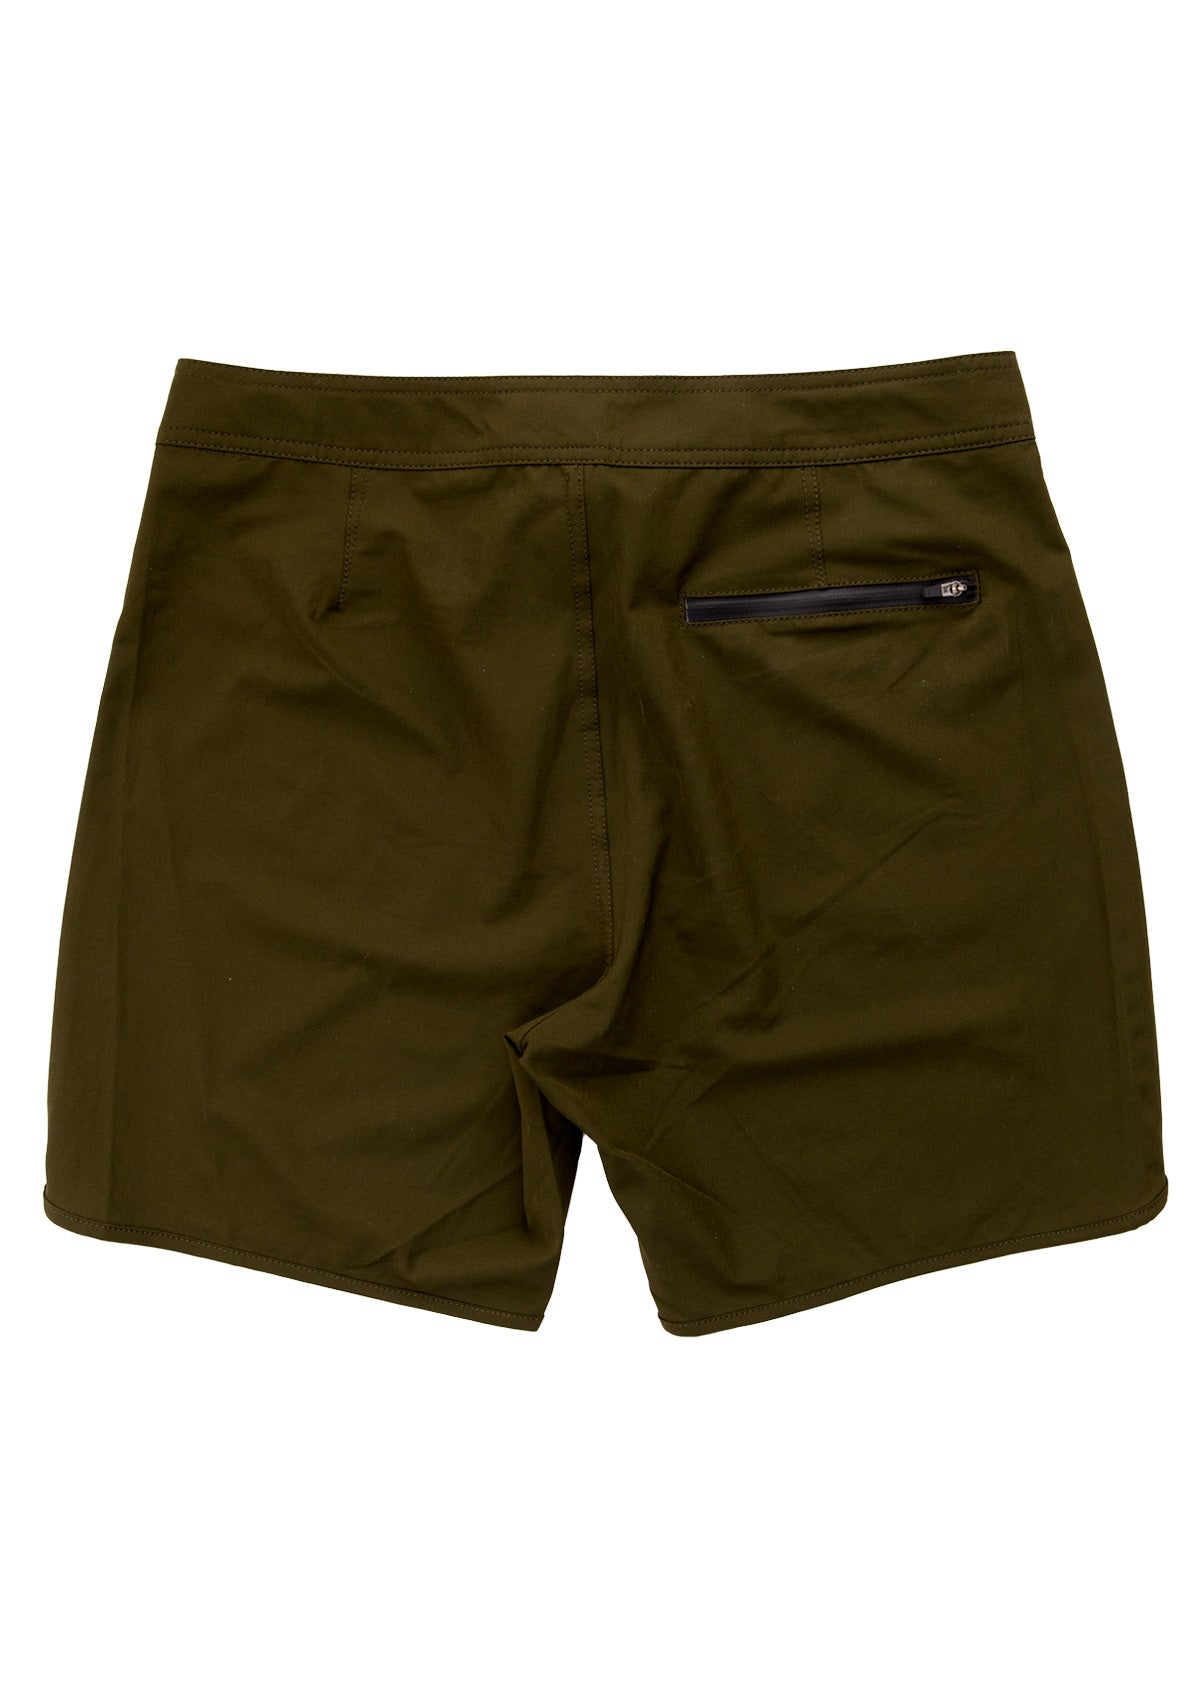 needessentials scallop mens surfing boardshorts non branded olive swimming